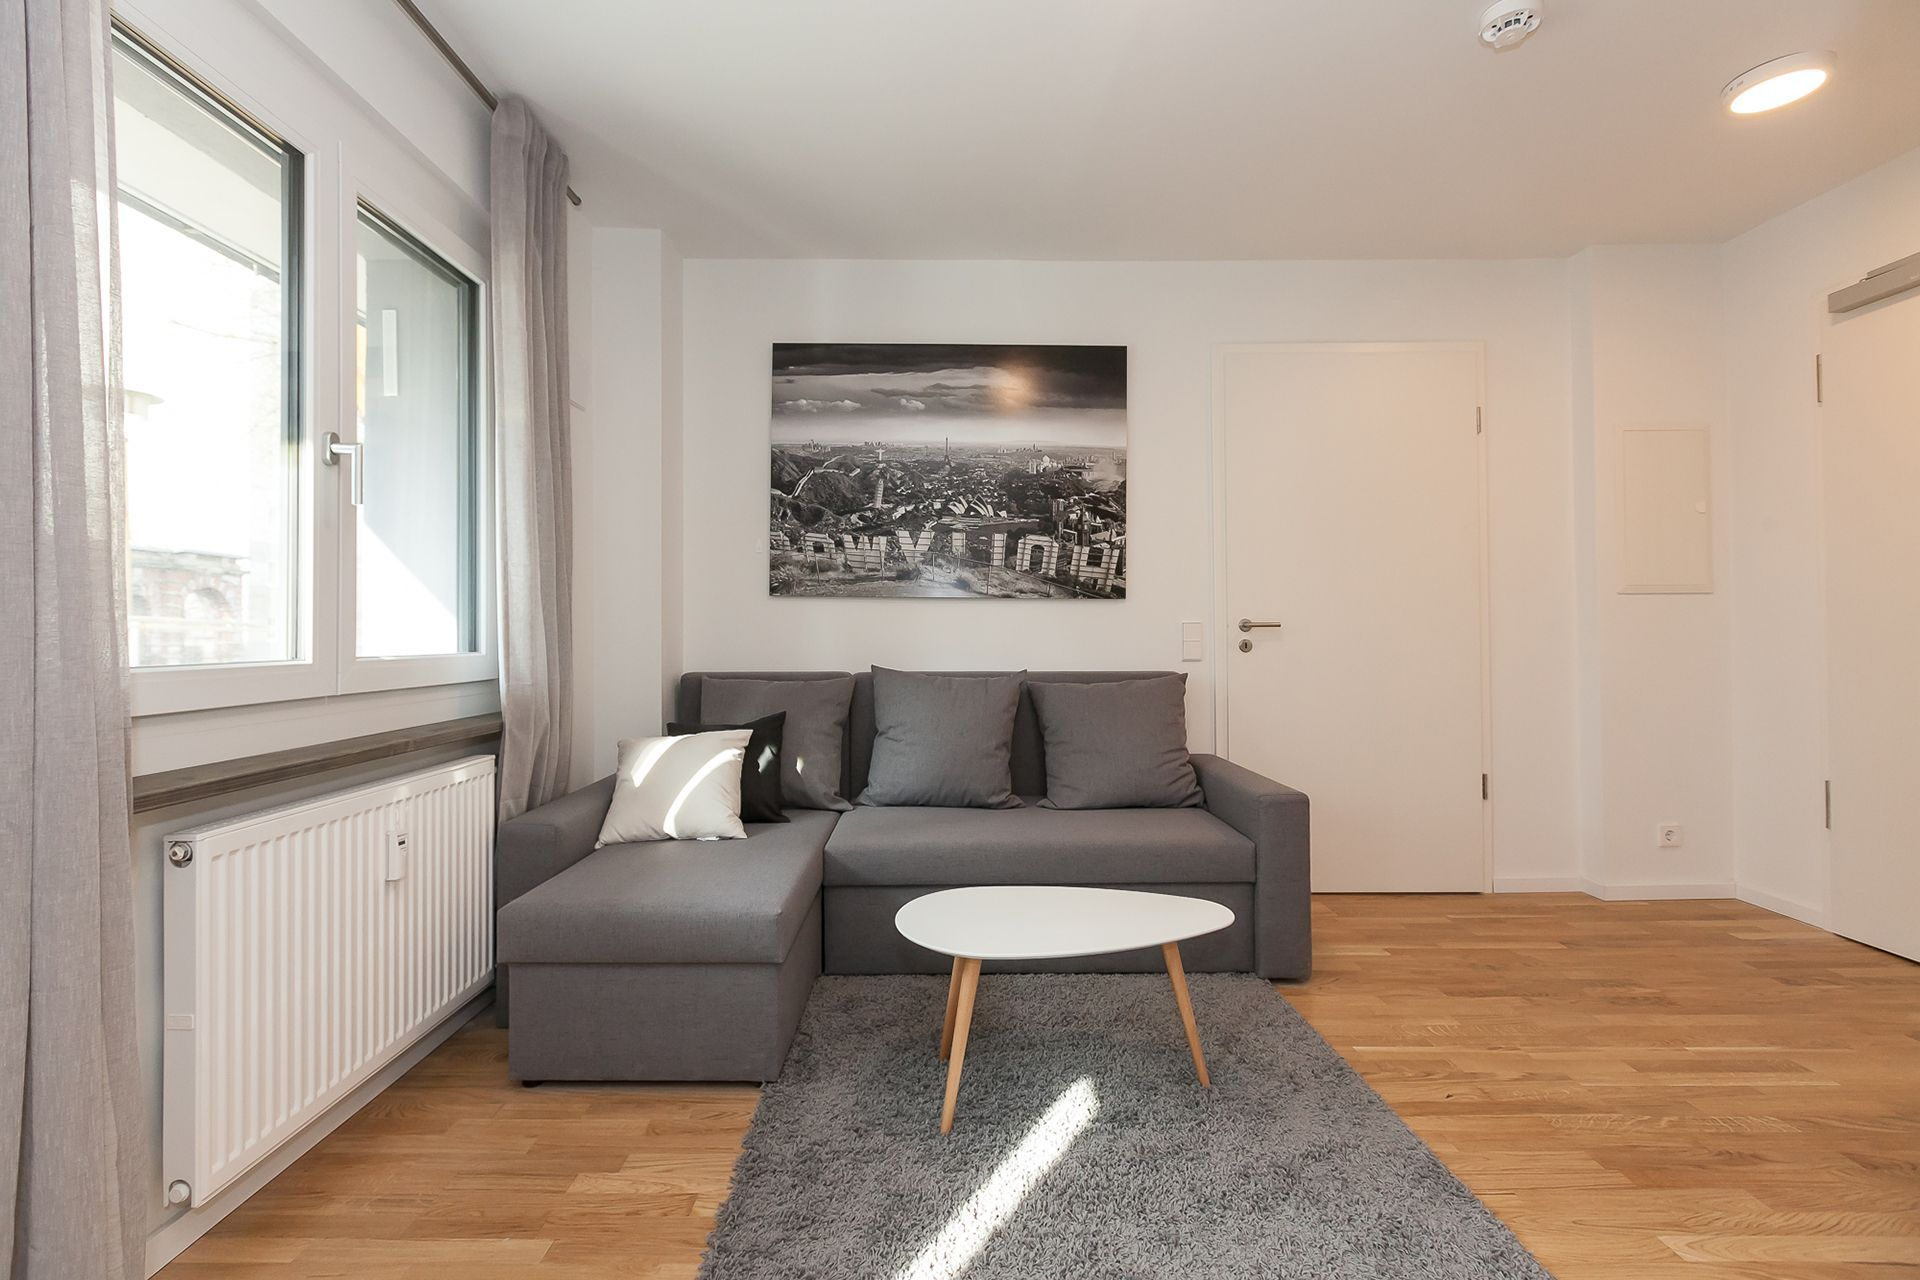 1 Bedroom - Large apartment to rent in Berlin KOEP-KOEP-0402-0